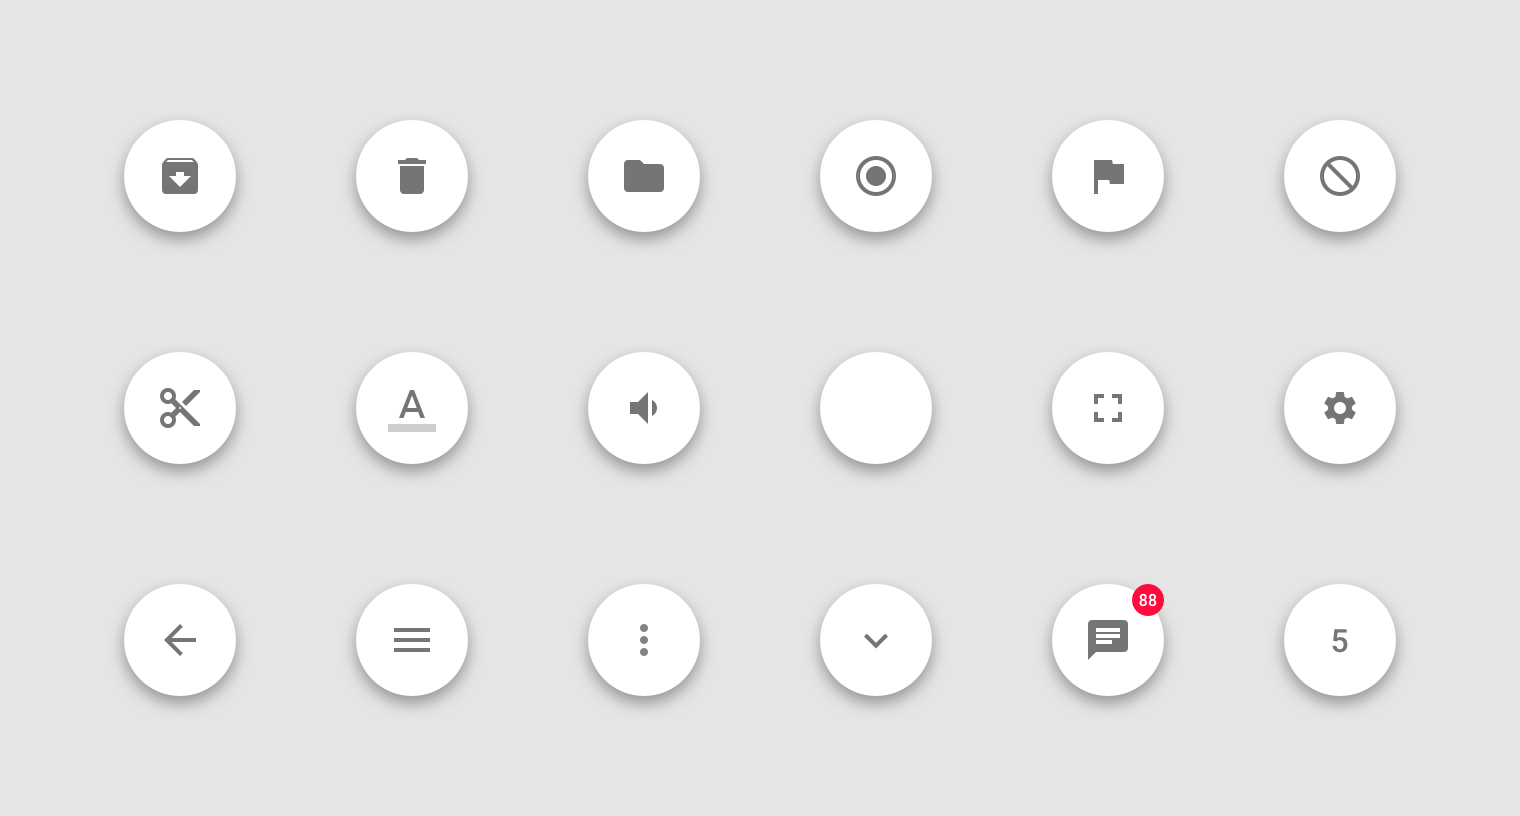 buttons floating action button material design